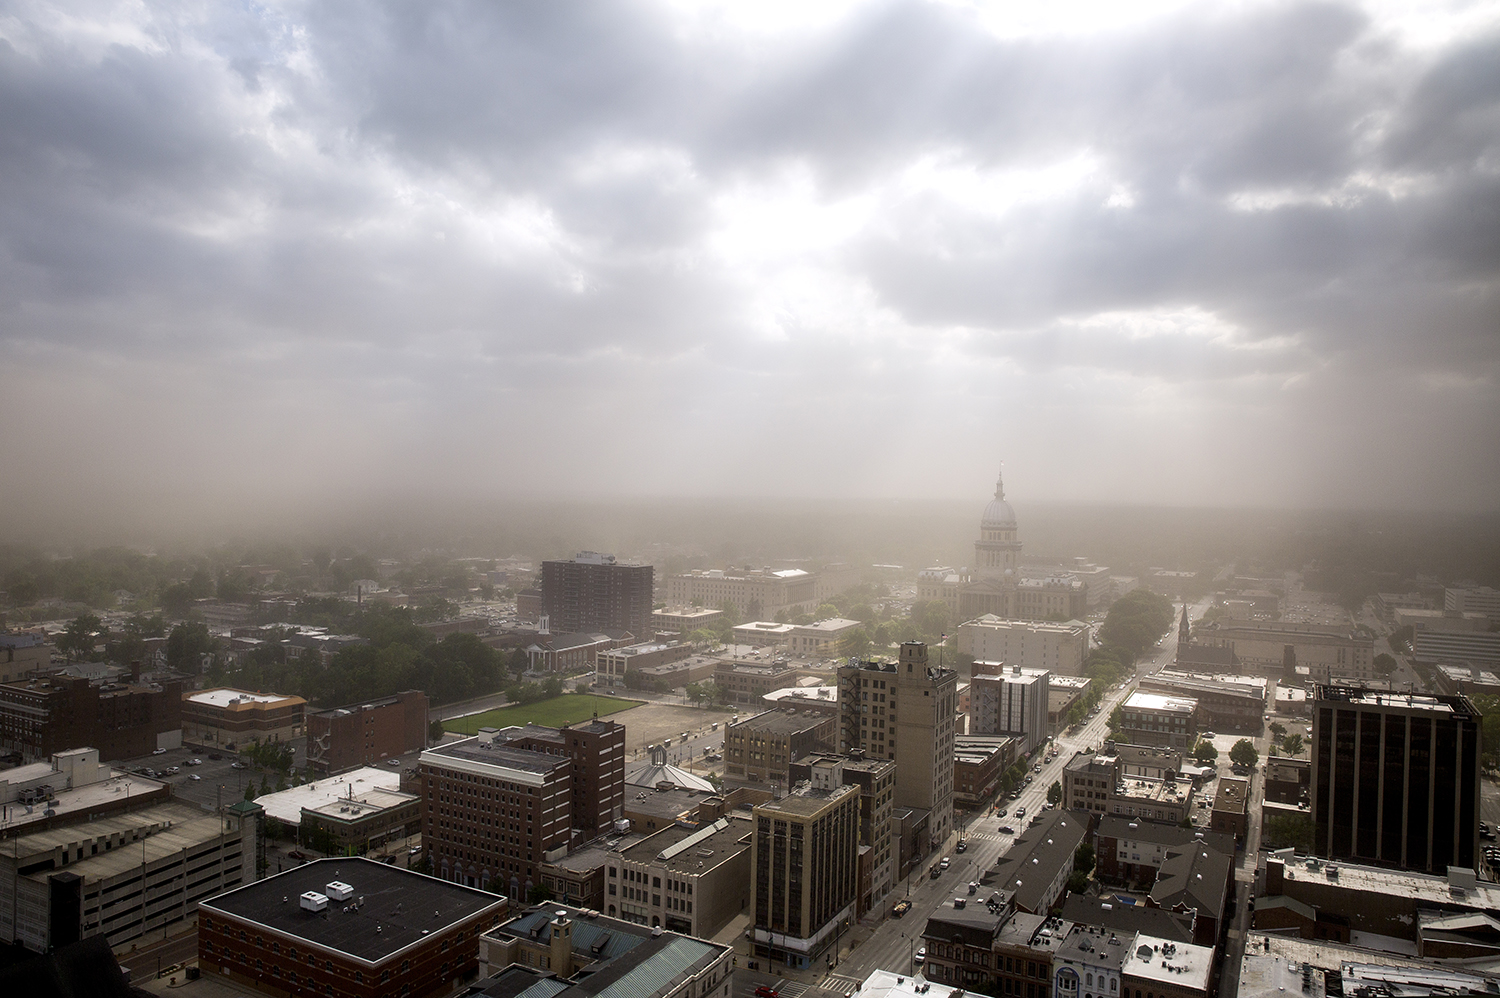 A dust storm driven by wind gusts in excess of 40 mph swept across central Illinois and into the city of Springfield May 16, creating a hazy view of the downtown skyline in a view from the Wyndham City Centre. The storm created blackout conditions on roads in the area that lead to several accidents. Rich Saal/The State Journal-Register